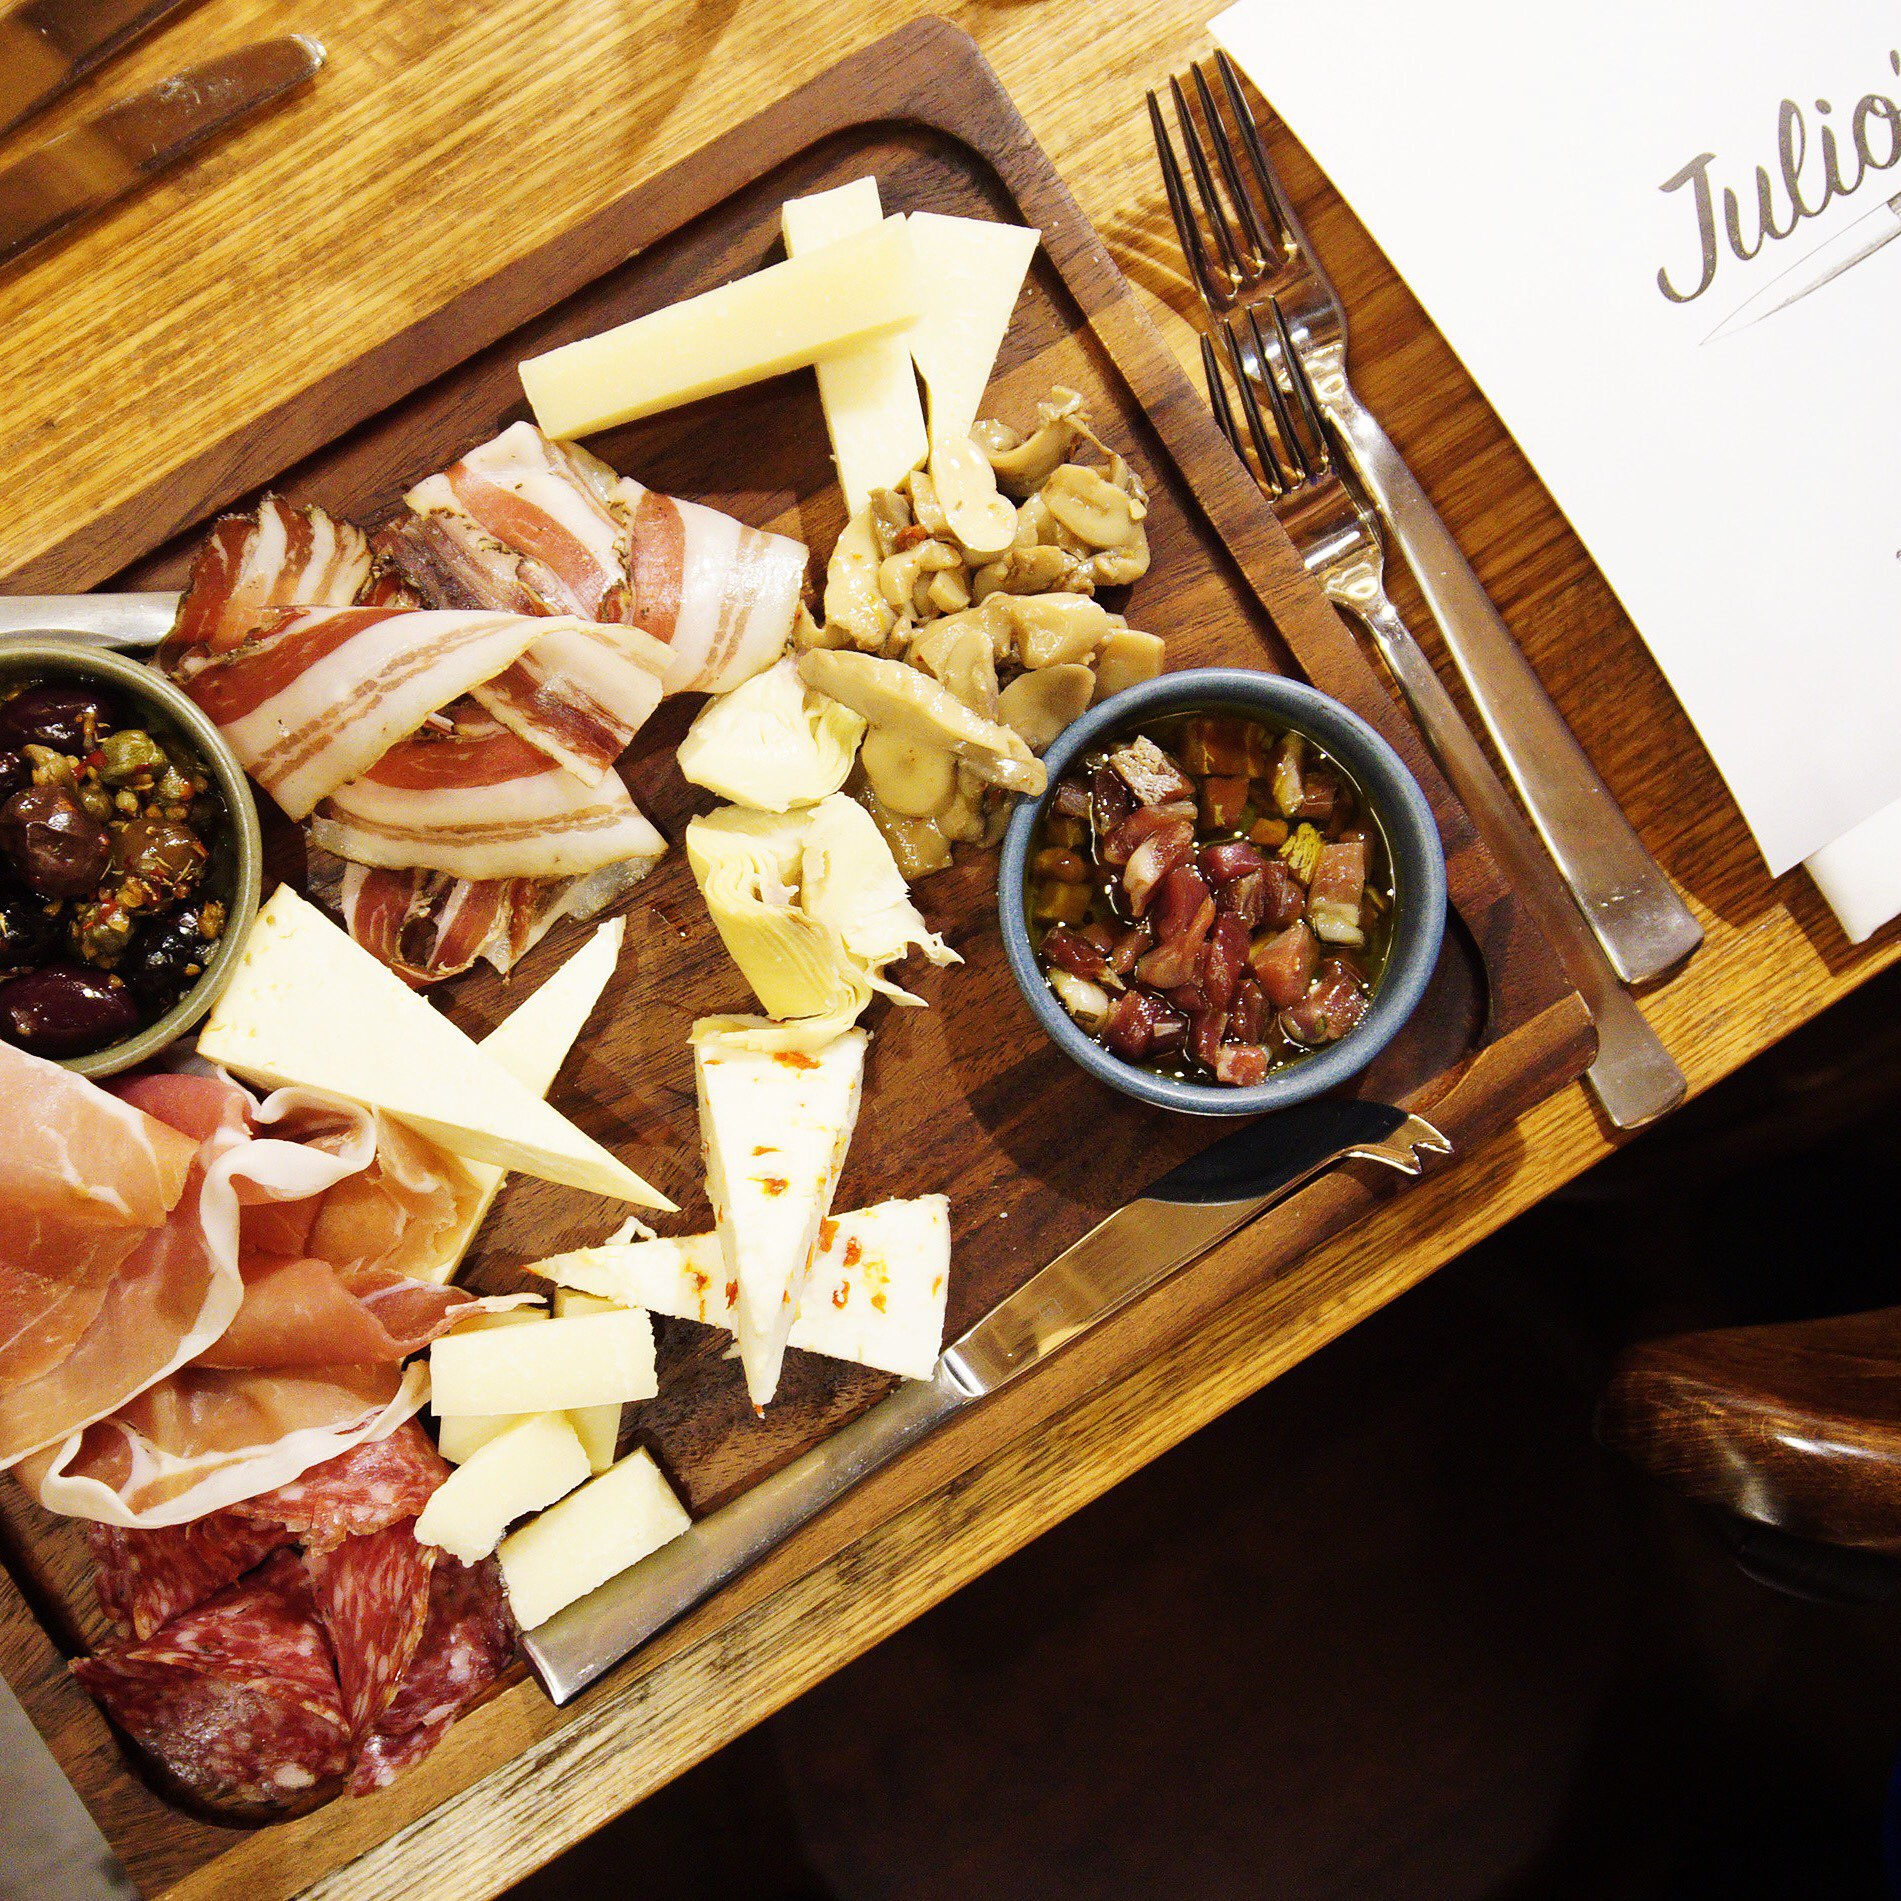 """""""Julio's Board to Share"""" with artisan cold cuts & selection of delicious Italian cheeses (love the spicy one!)"""